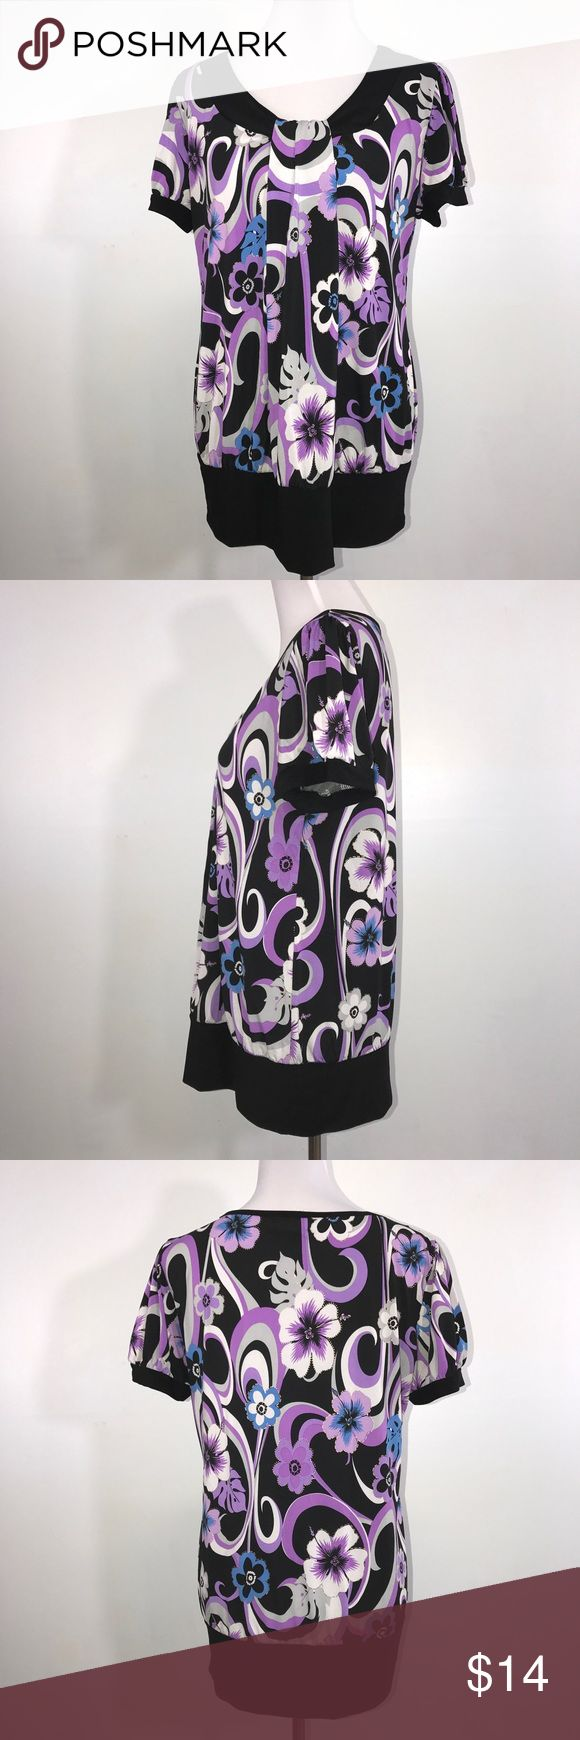 """Casual Land Woman's Top 3XL Purple Black Casual Land purple, blue, gray and black top. Lying flat, approximate measurements are: Bust 22""""; waist 22""""; hip 25""""; length 29"""". (B02-09)     🌼 No holes, piling or stains. Items stored in smoke free, pet free, perfume free environment. No trades or modeling. Same or next day shipping.  Save by bundling. All offers should be submitted with the offer button. Tops"""